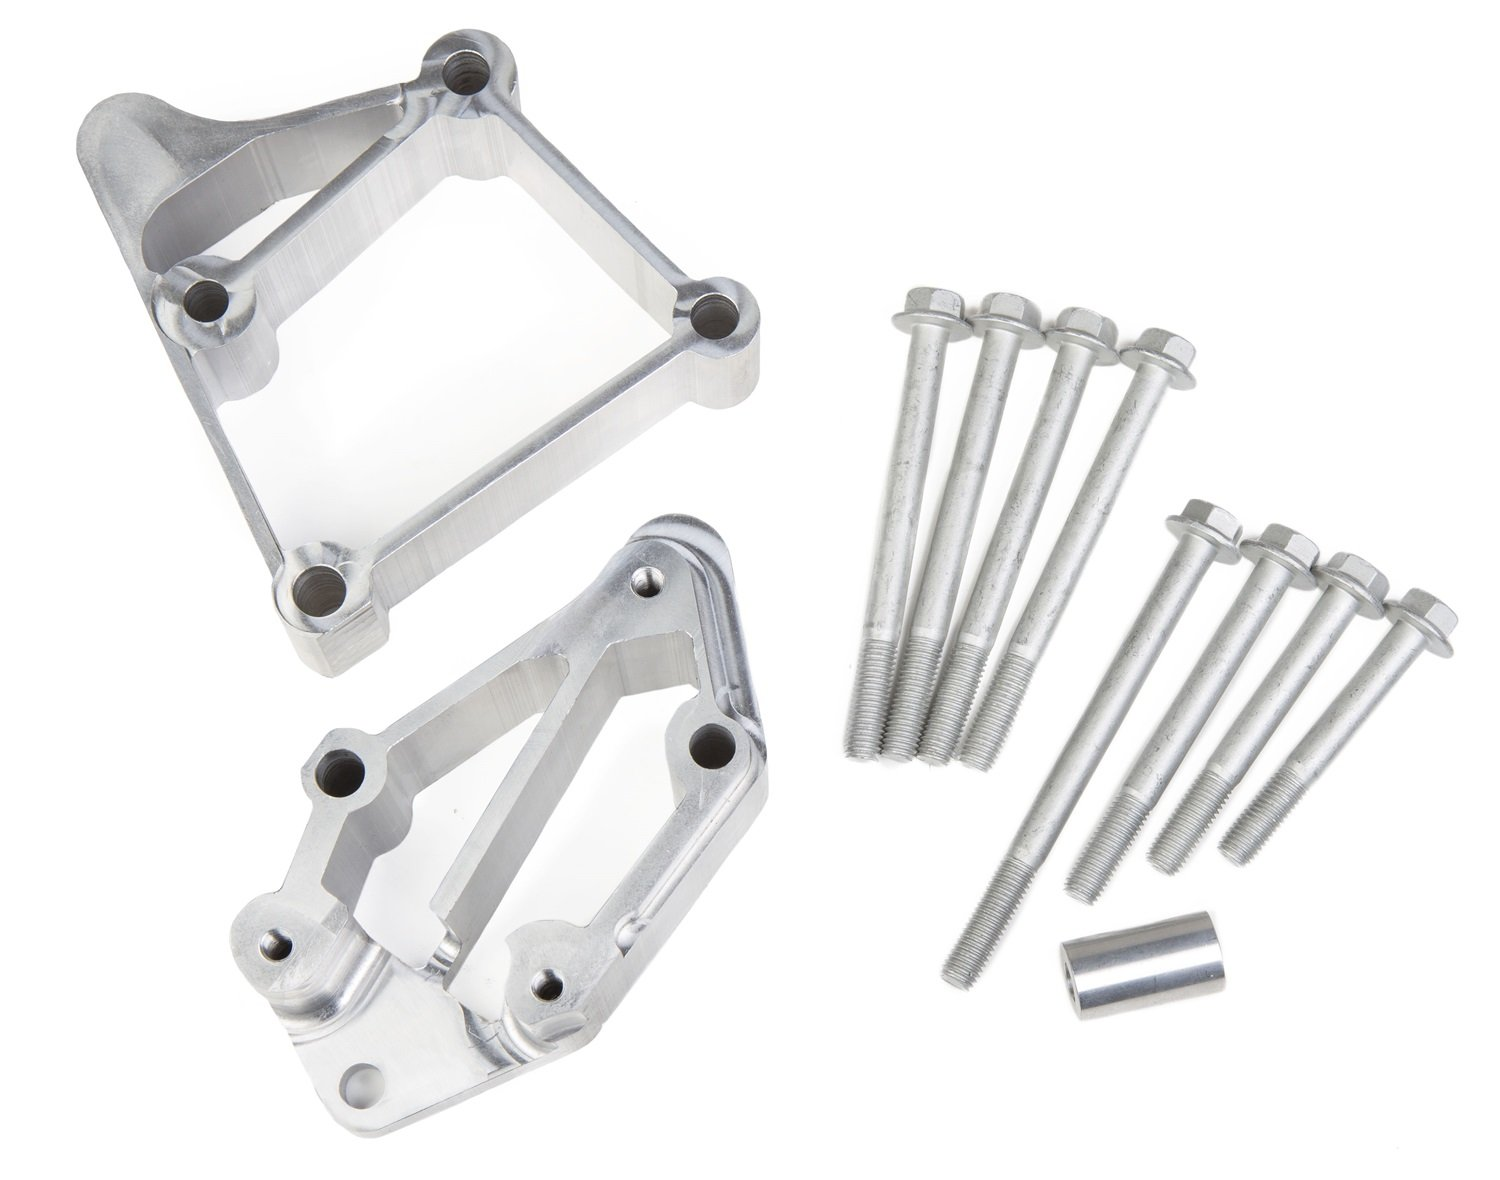 Holley 21-3 LS Accessory Drive Bracket Kit by Holley